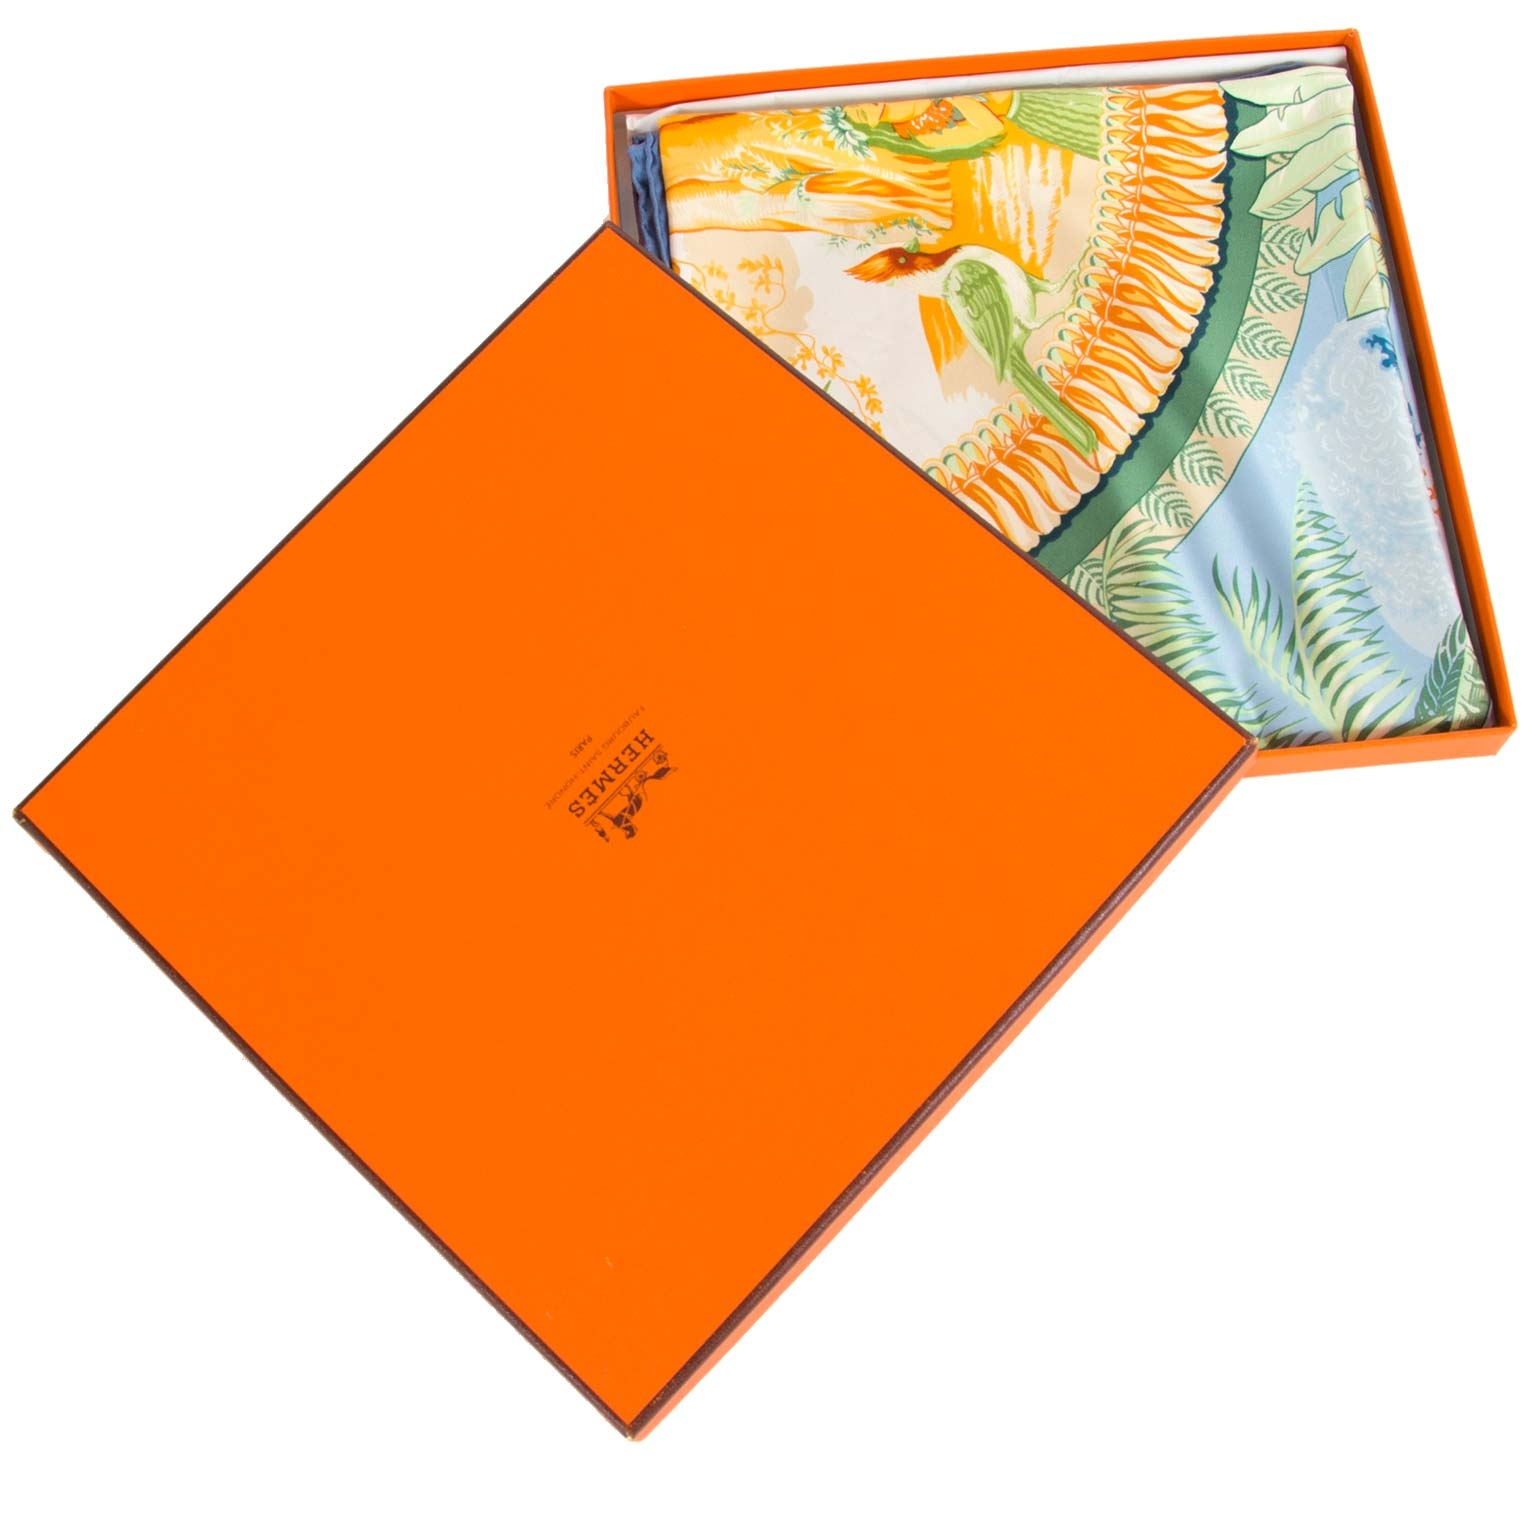 hermes carre aloha scarf at labellov vintage fashion webshop belgium